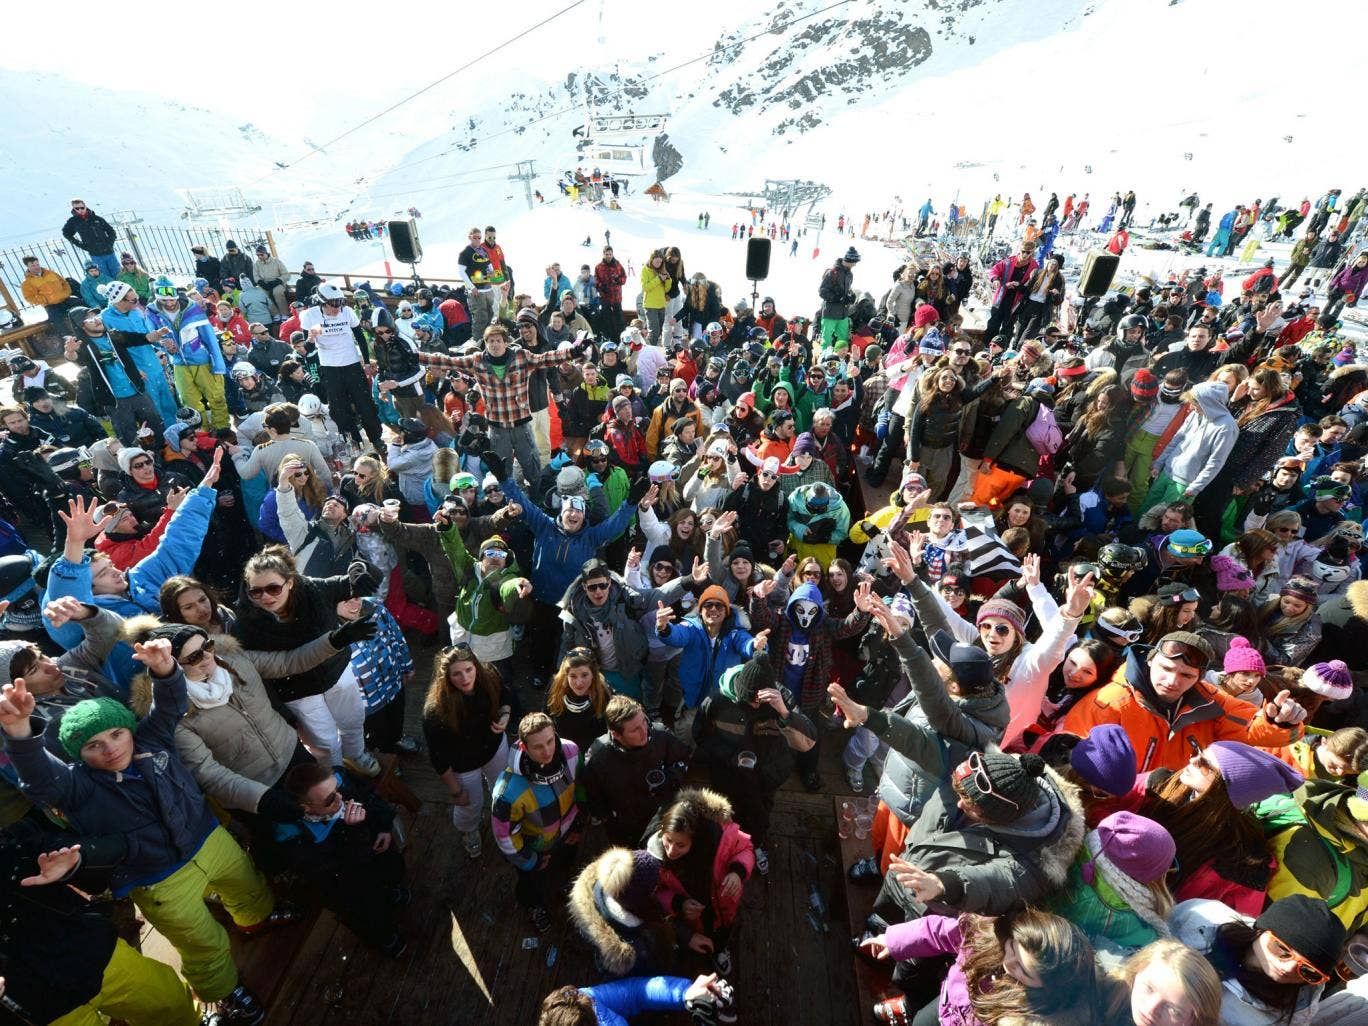 People drink and dance on an outdoor dance floor at the 'La Folie Douce' on February 28, 2013 in Val Thorens, French Alps. 'La Folie Douce' is an altitude fooding-clubbing concept held at the Val Thorens' restaurant 'La Fruitière' and the bar 'La Folie Do